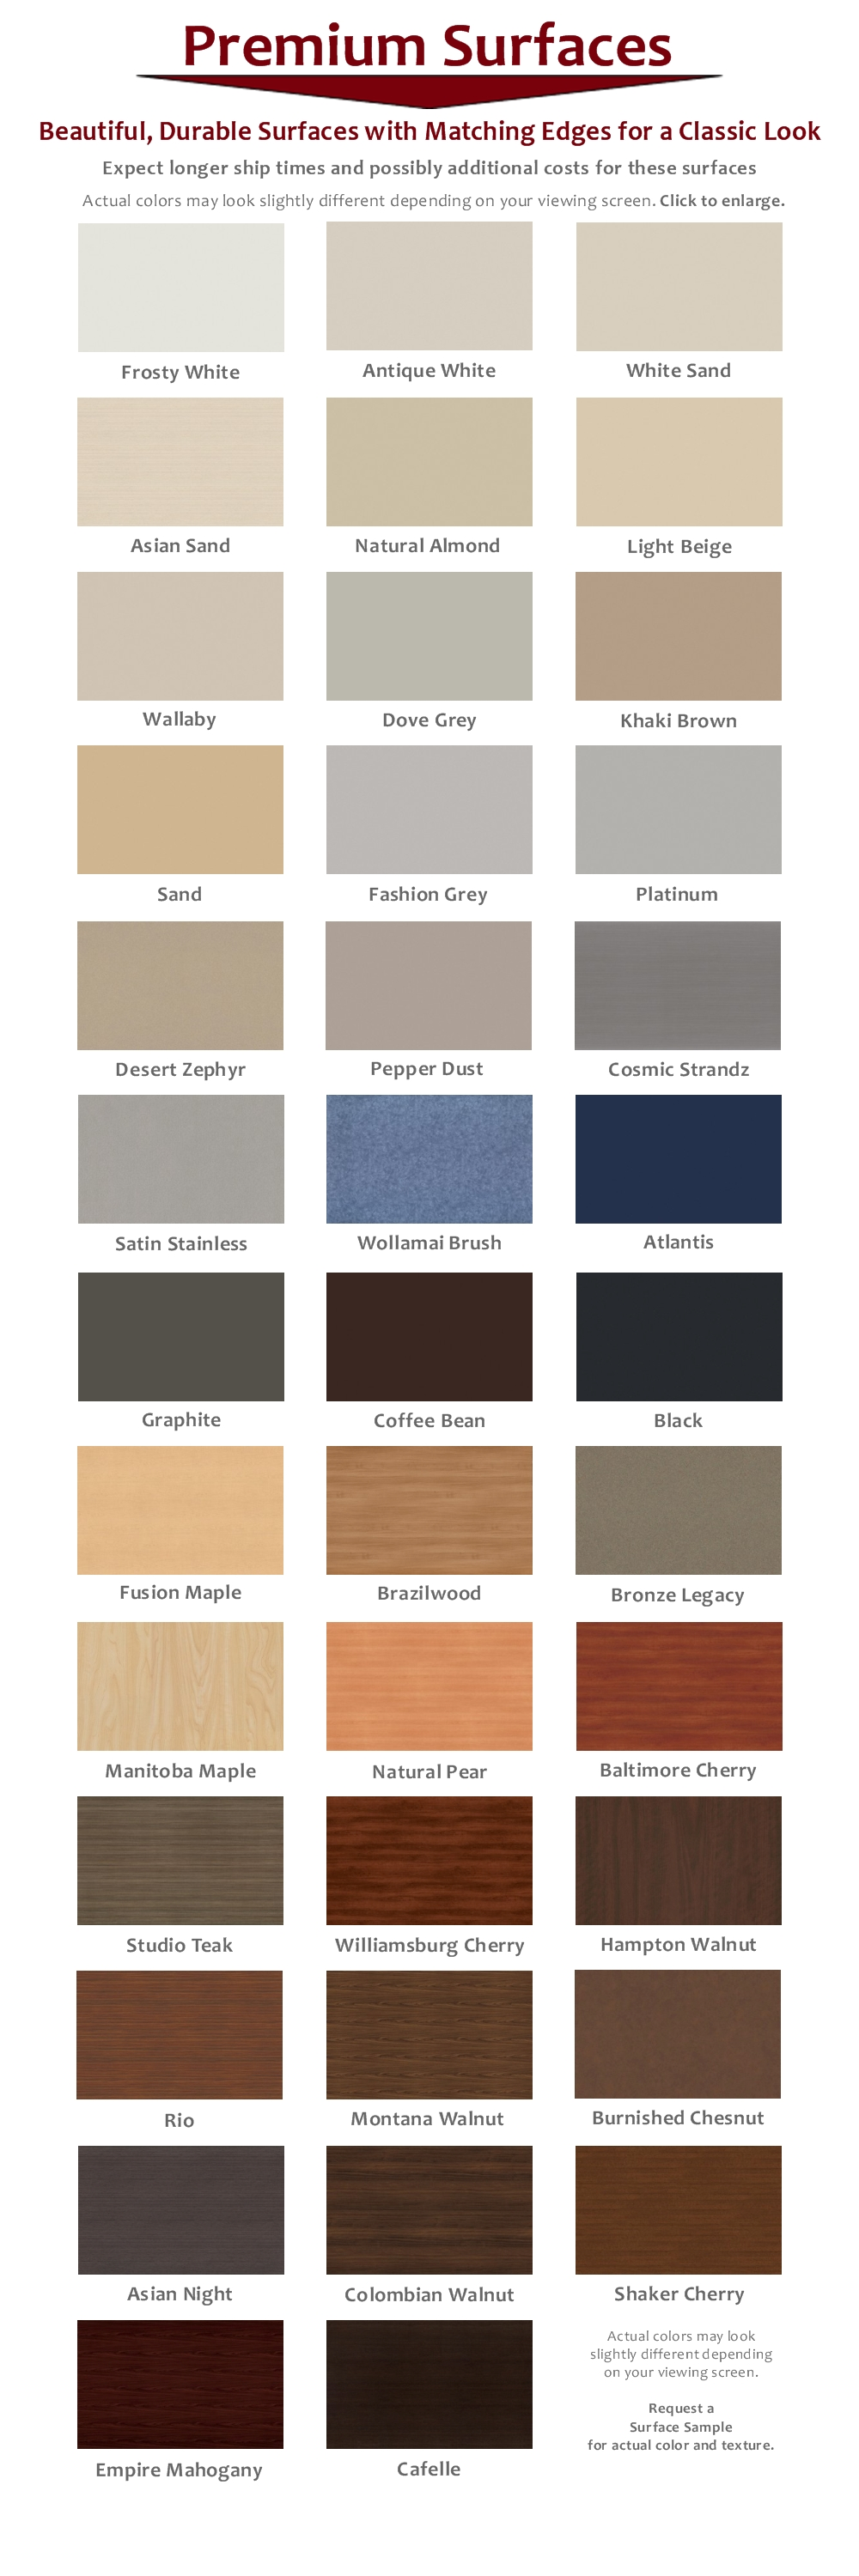 AdjustableSurface Swatches with Matching Edge